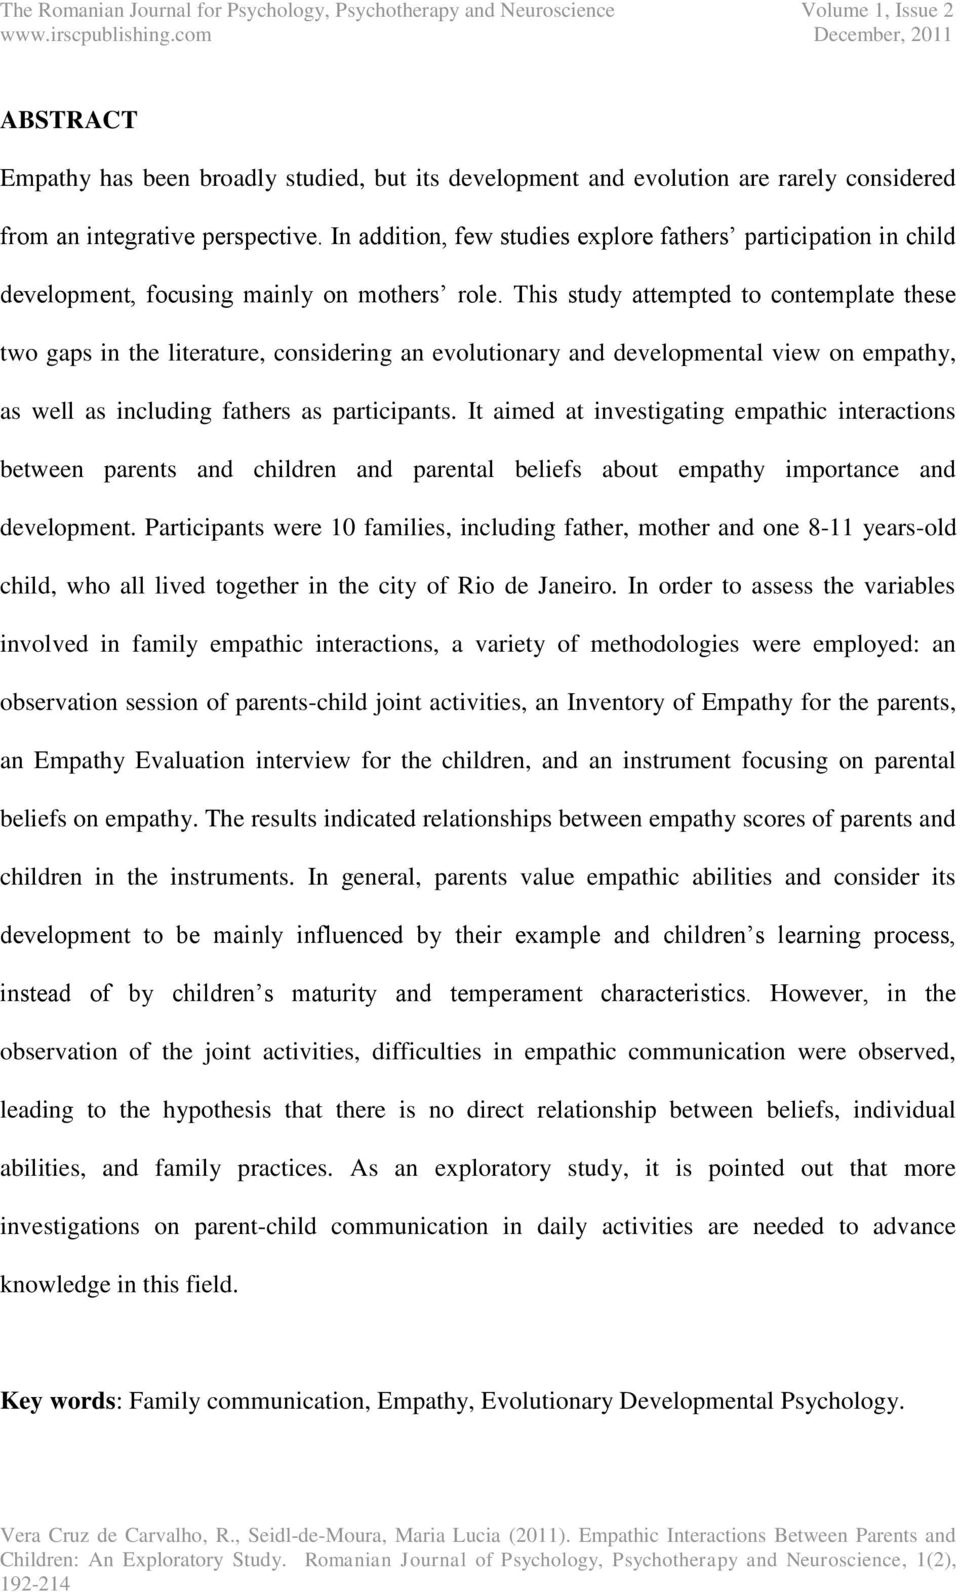 This study attempted to contemplate these two gaps in the literature, considering an evolutionary and developmental view on empathy, as well as including fathers as participants.